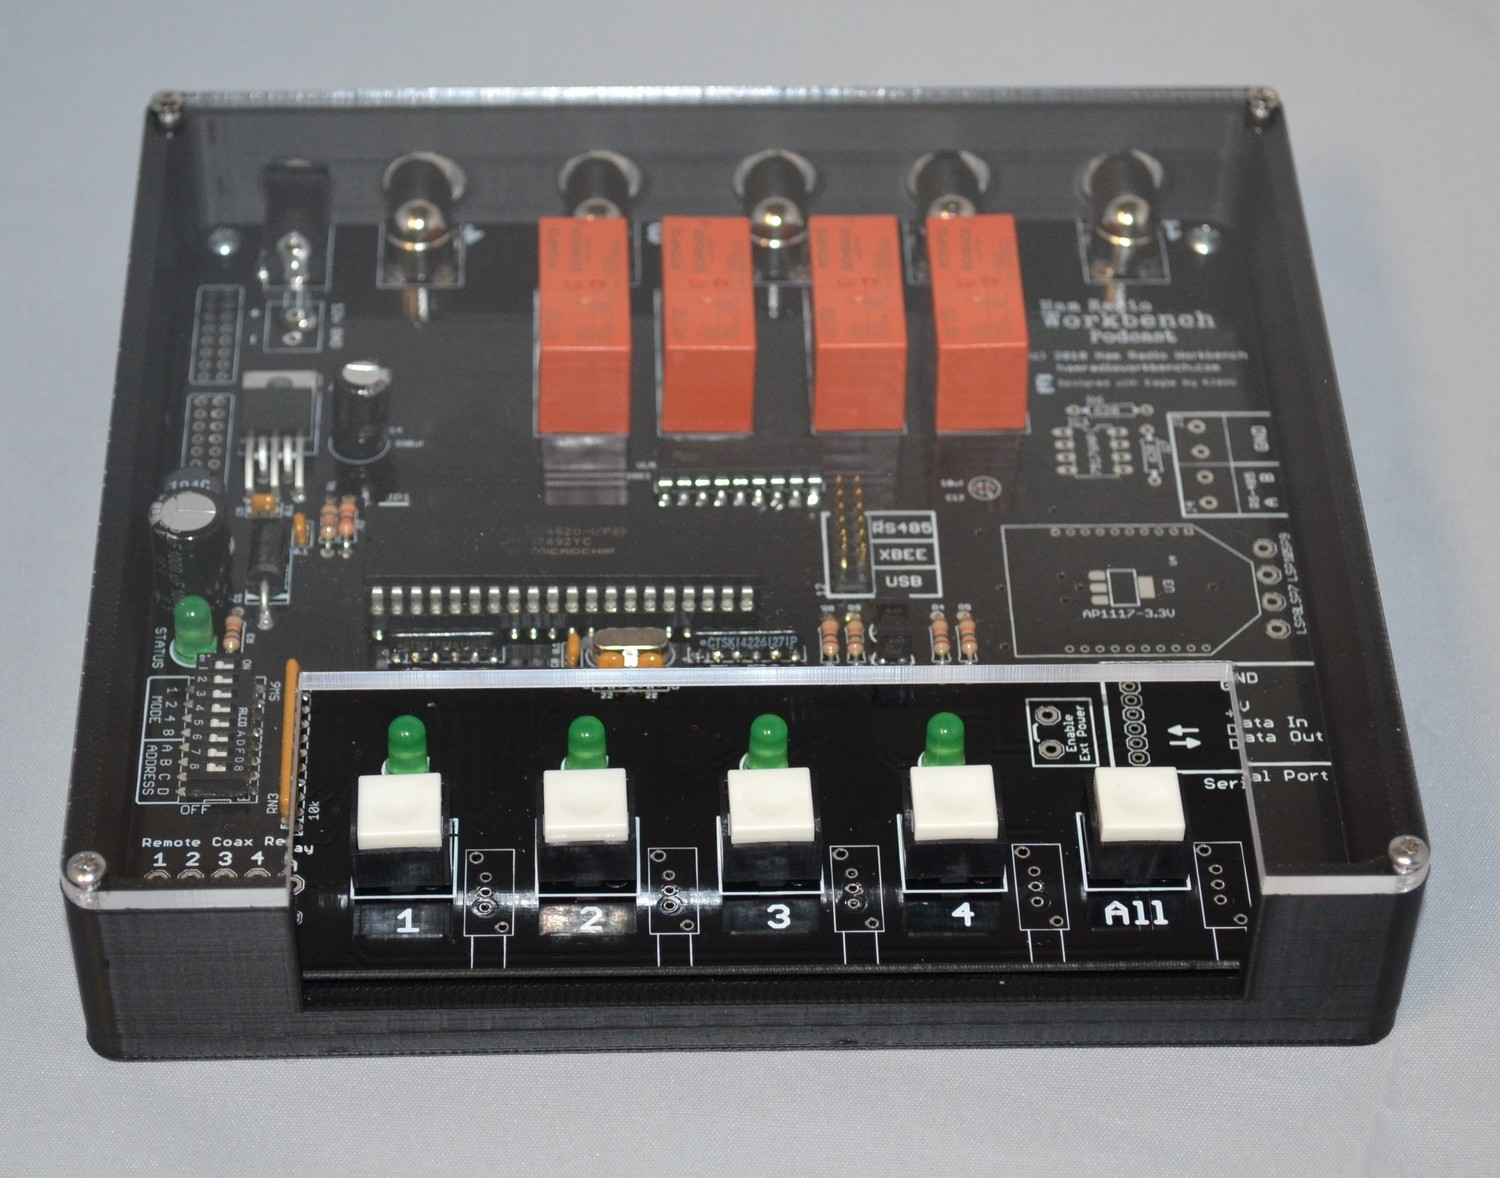 Ham Radio Workbench 4-Port Coax Relay Case